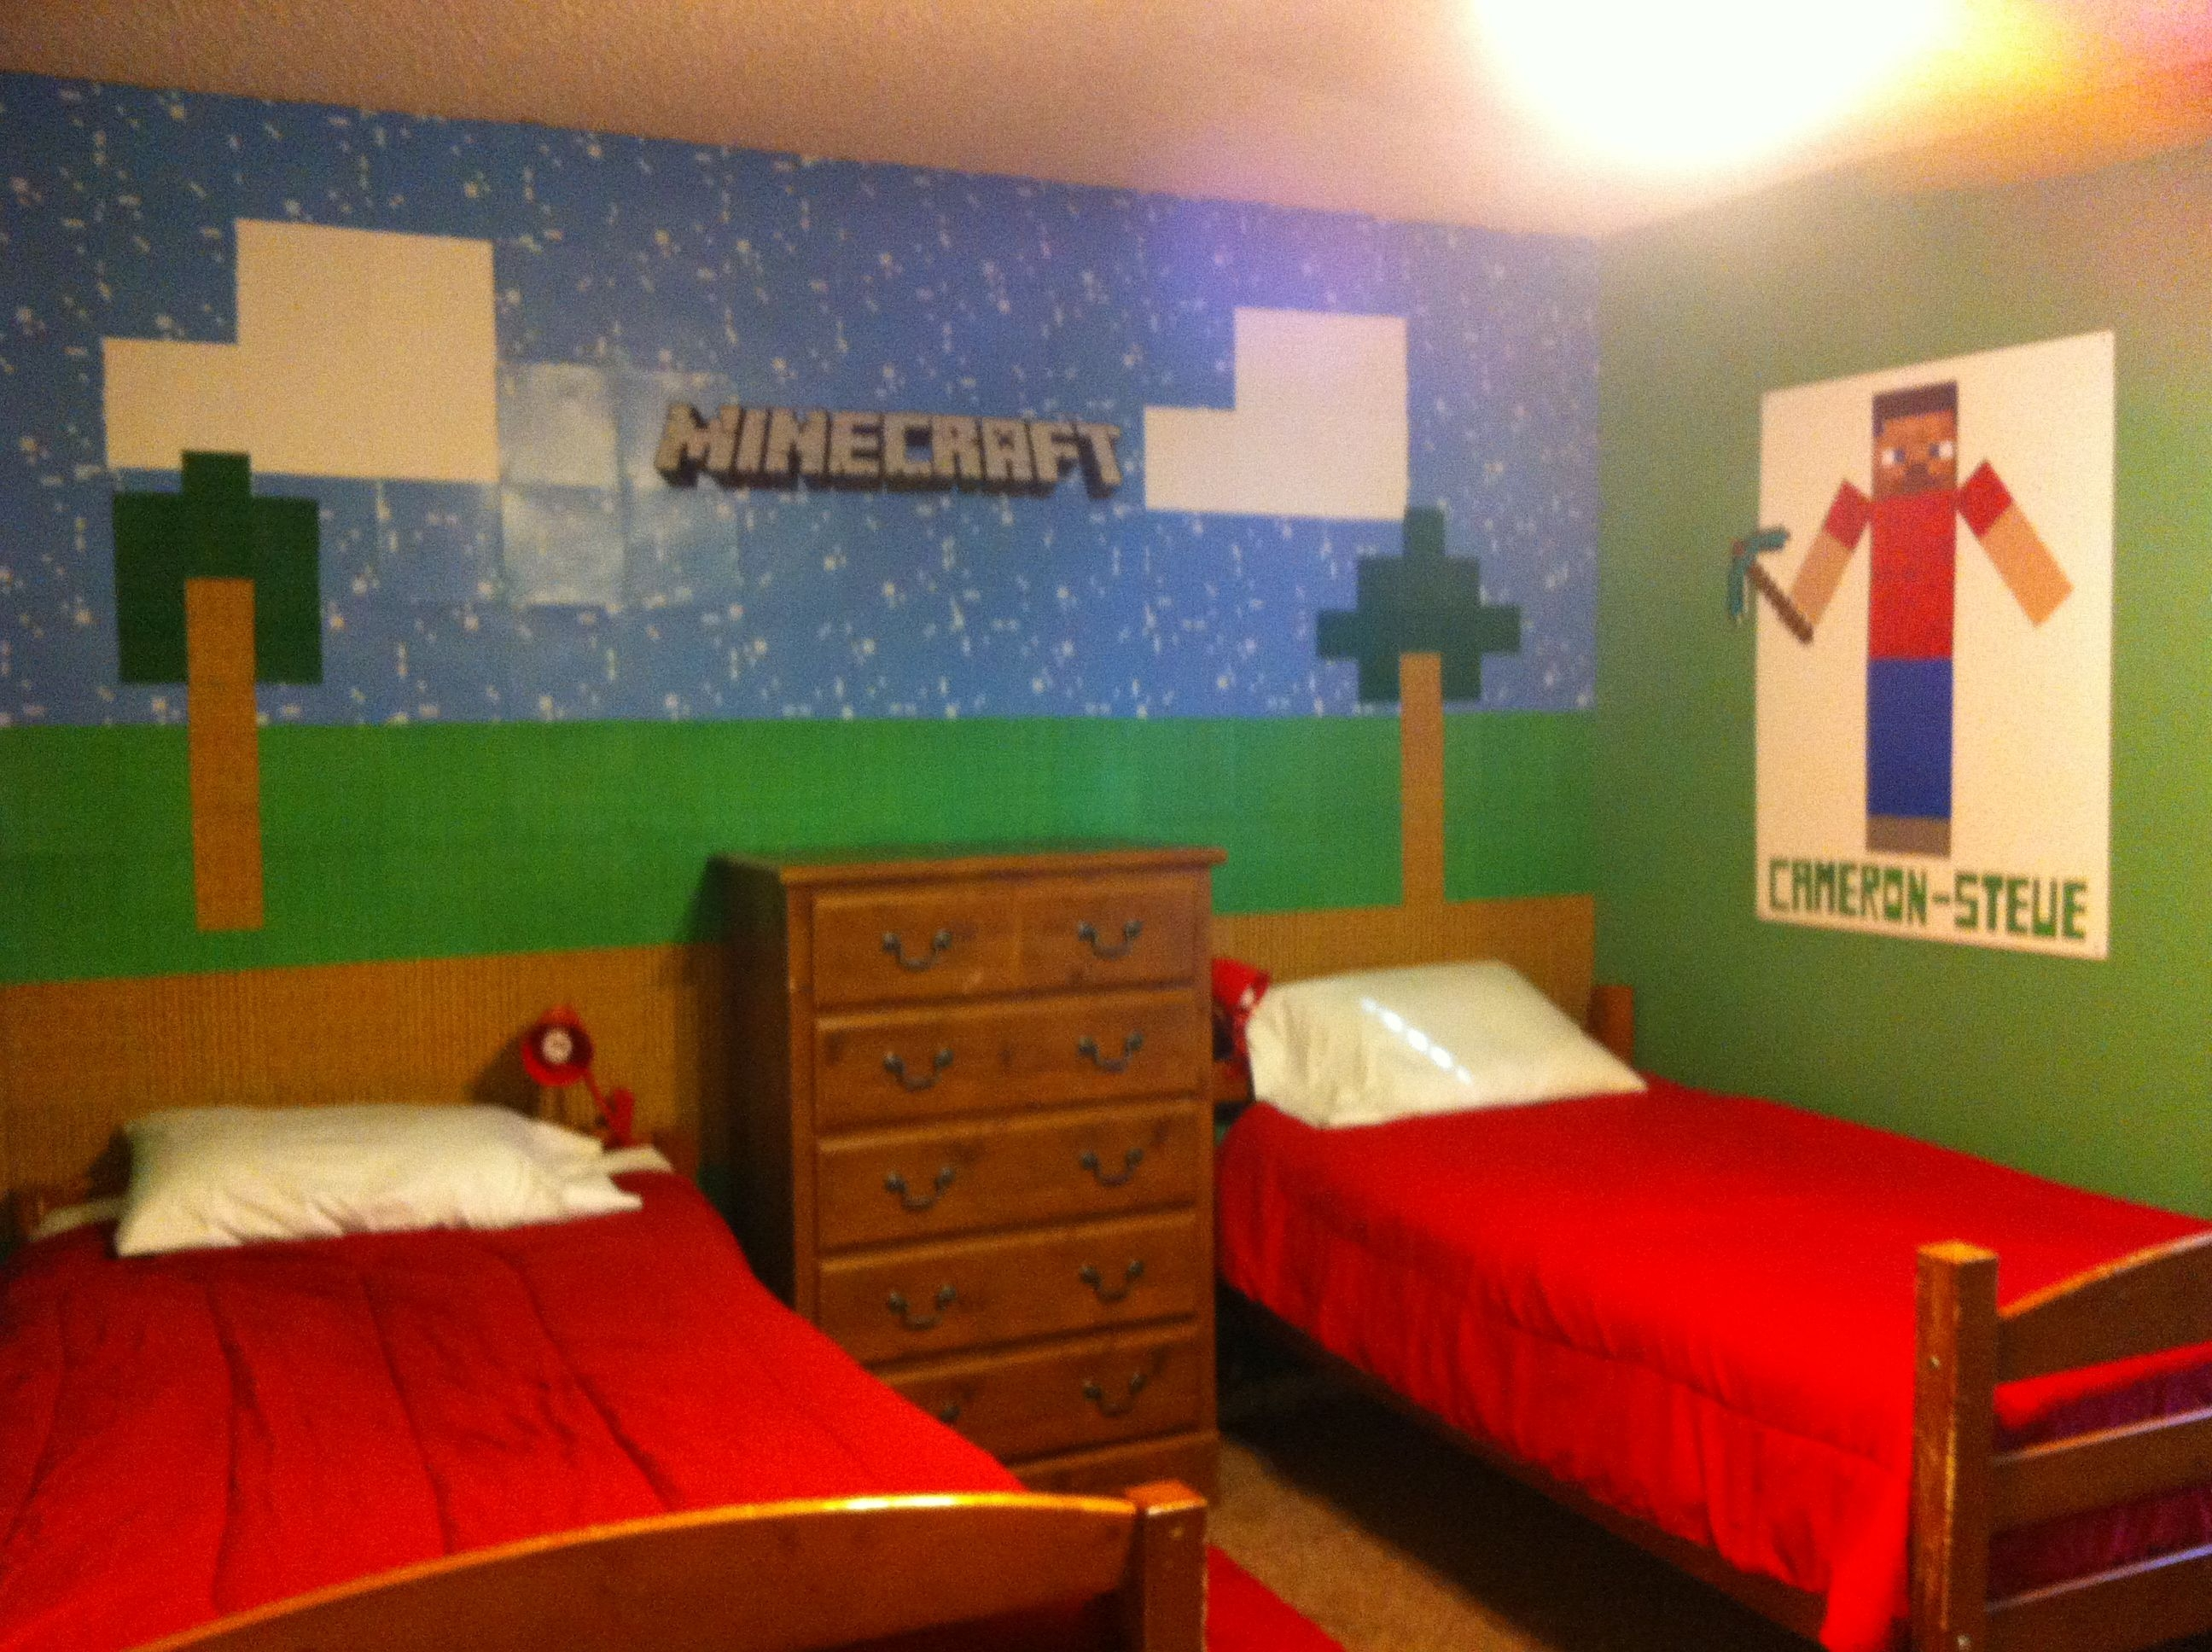 Minecraft room pic2  Kids  Pinterest  Minecraft room